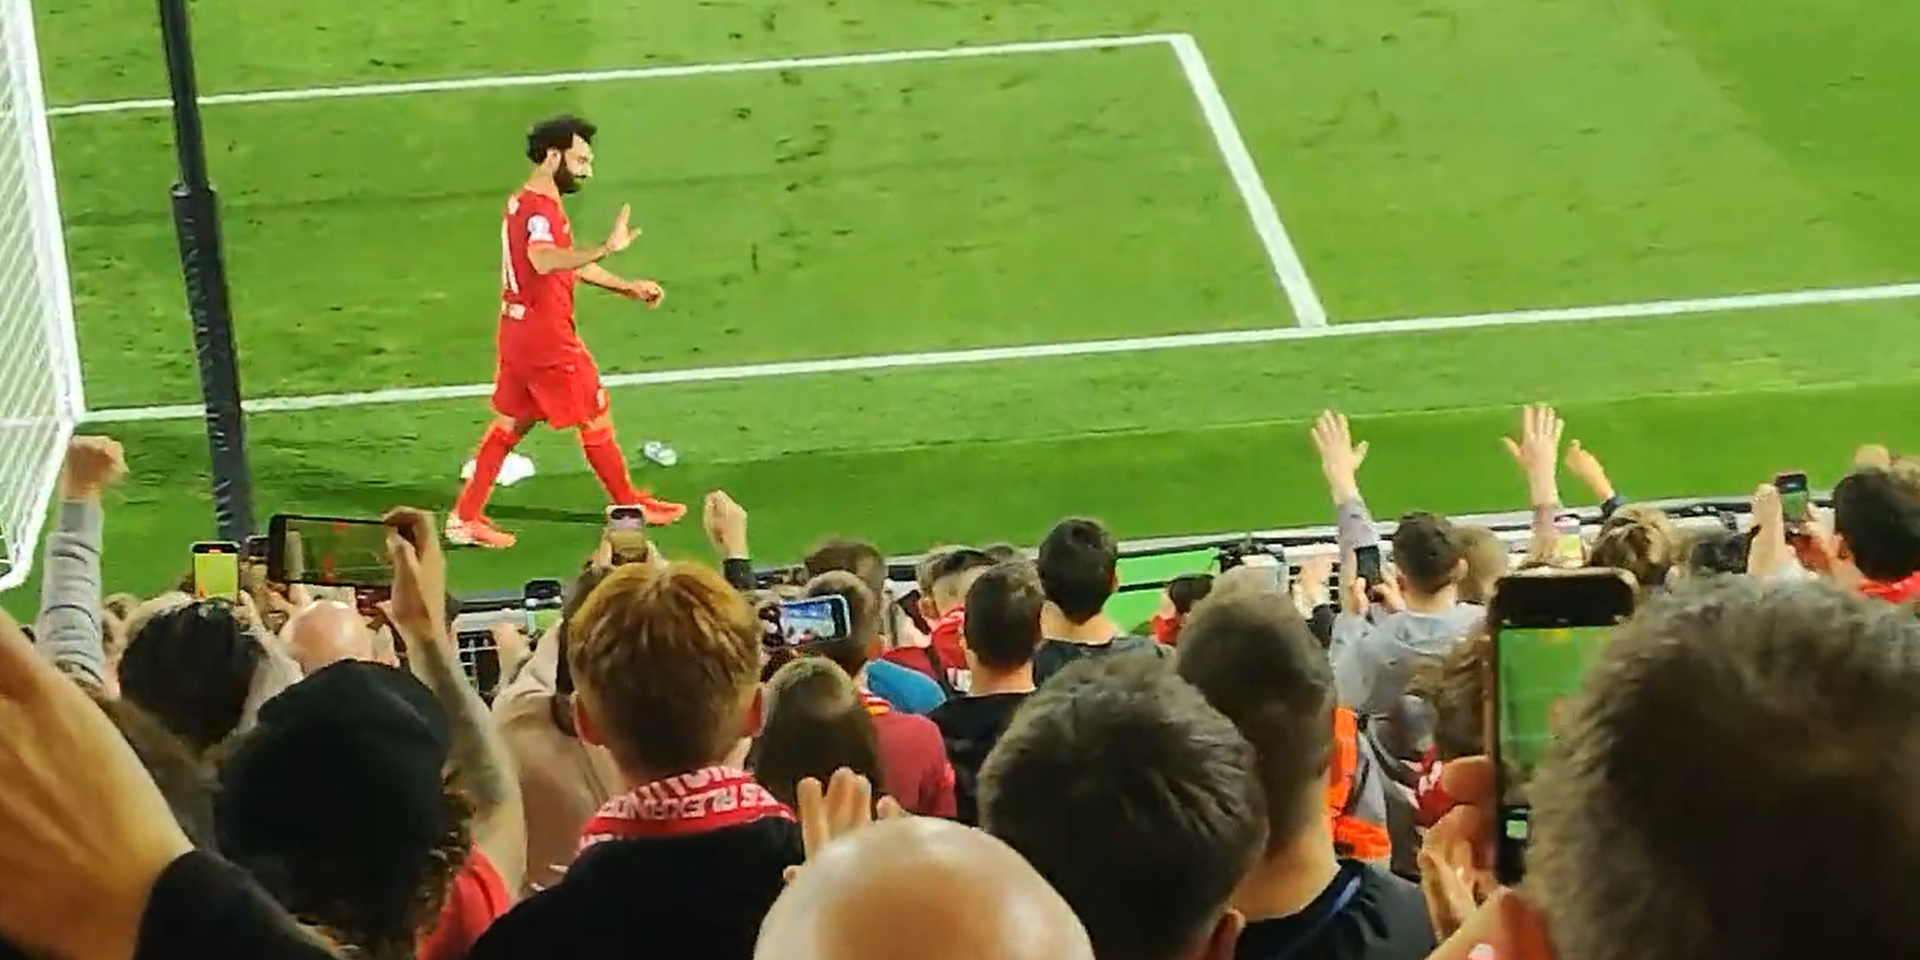 (Video) Salah acknowledges Liverpool fans roaring 'Egyptian King' chant in fan footage during UCL clash